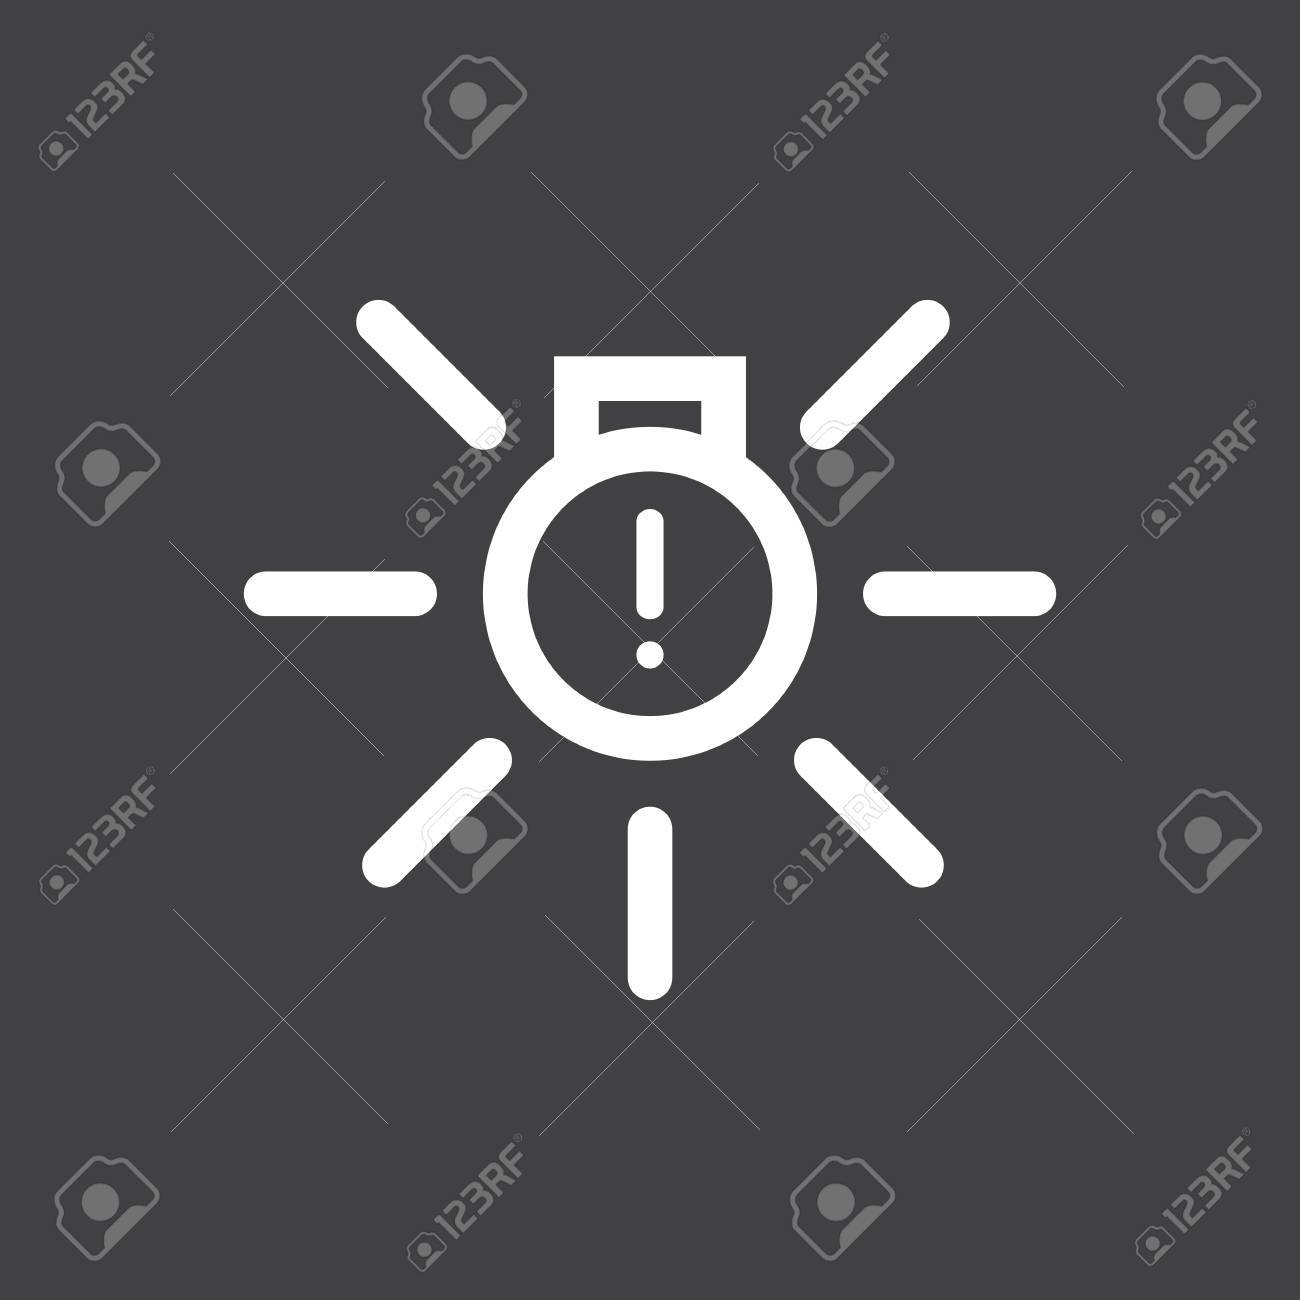 Vector Illustration Of A Sign On The Car Dashboard On A Gray - Car image sign of dashboardcar dashboard icons stock images royaltyfree imagesvectors